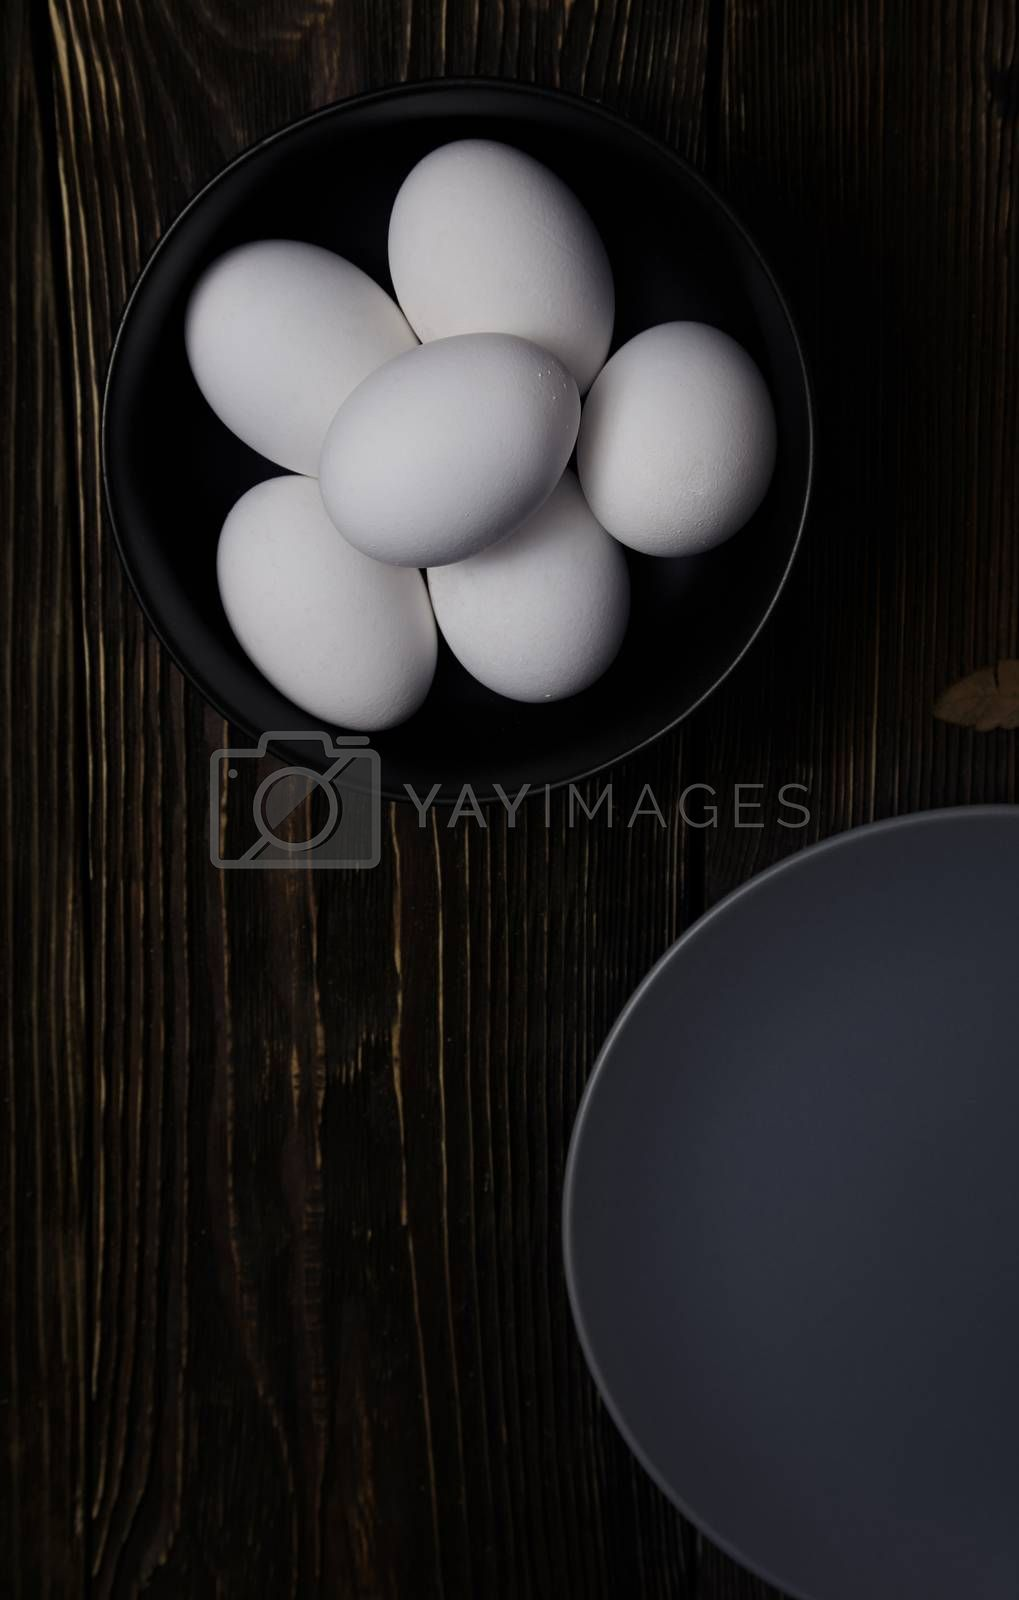 Chicken eggs in plate on a wooden table